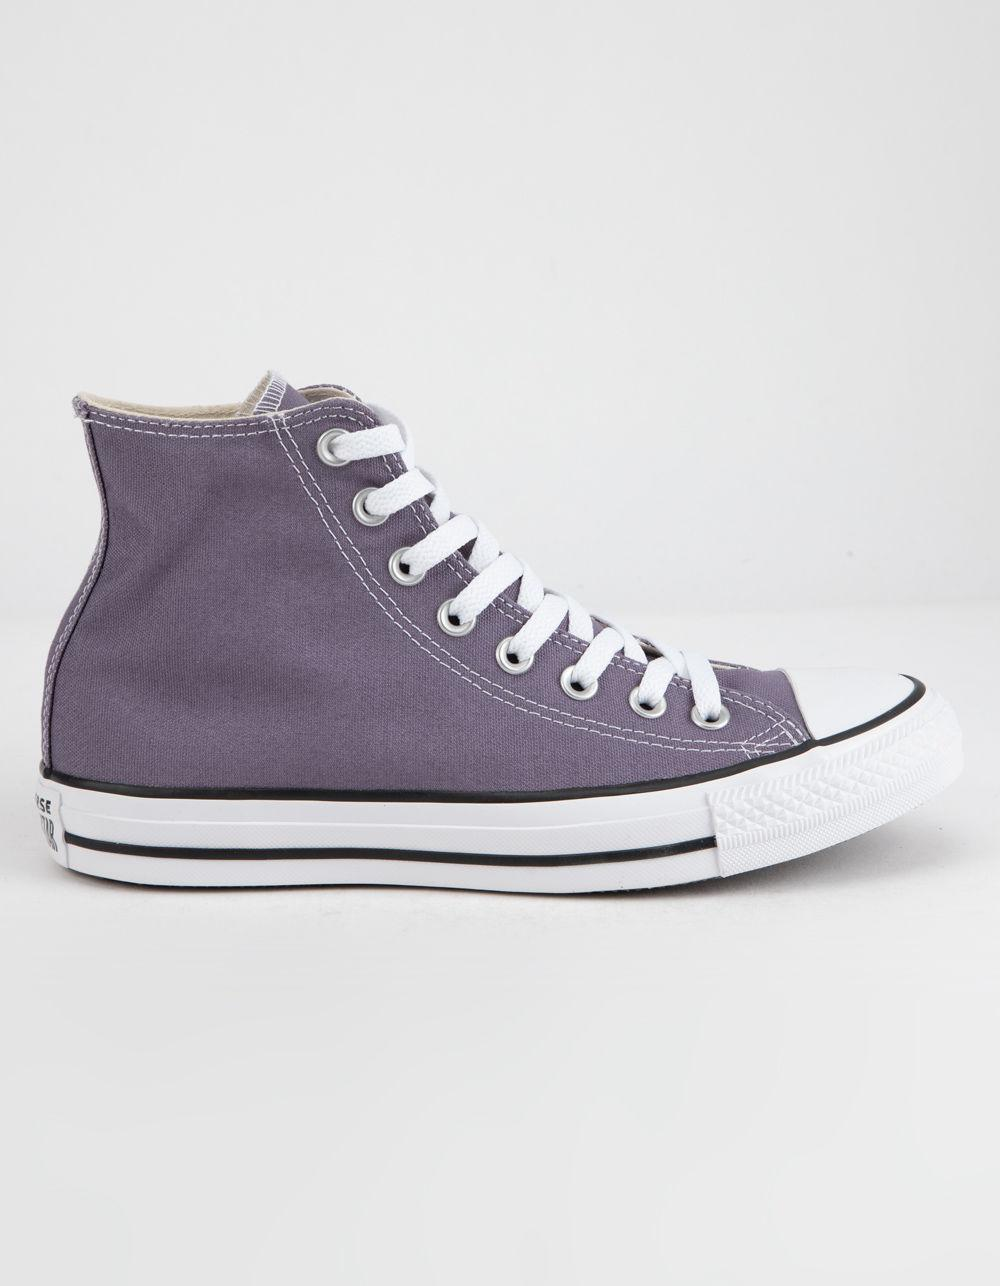 cd610dc4d5f Lyst - Converse Chuck Taylor All Star Moody Purple High Top Womens Shoes in  Purple - Save 47%